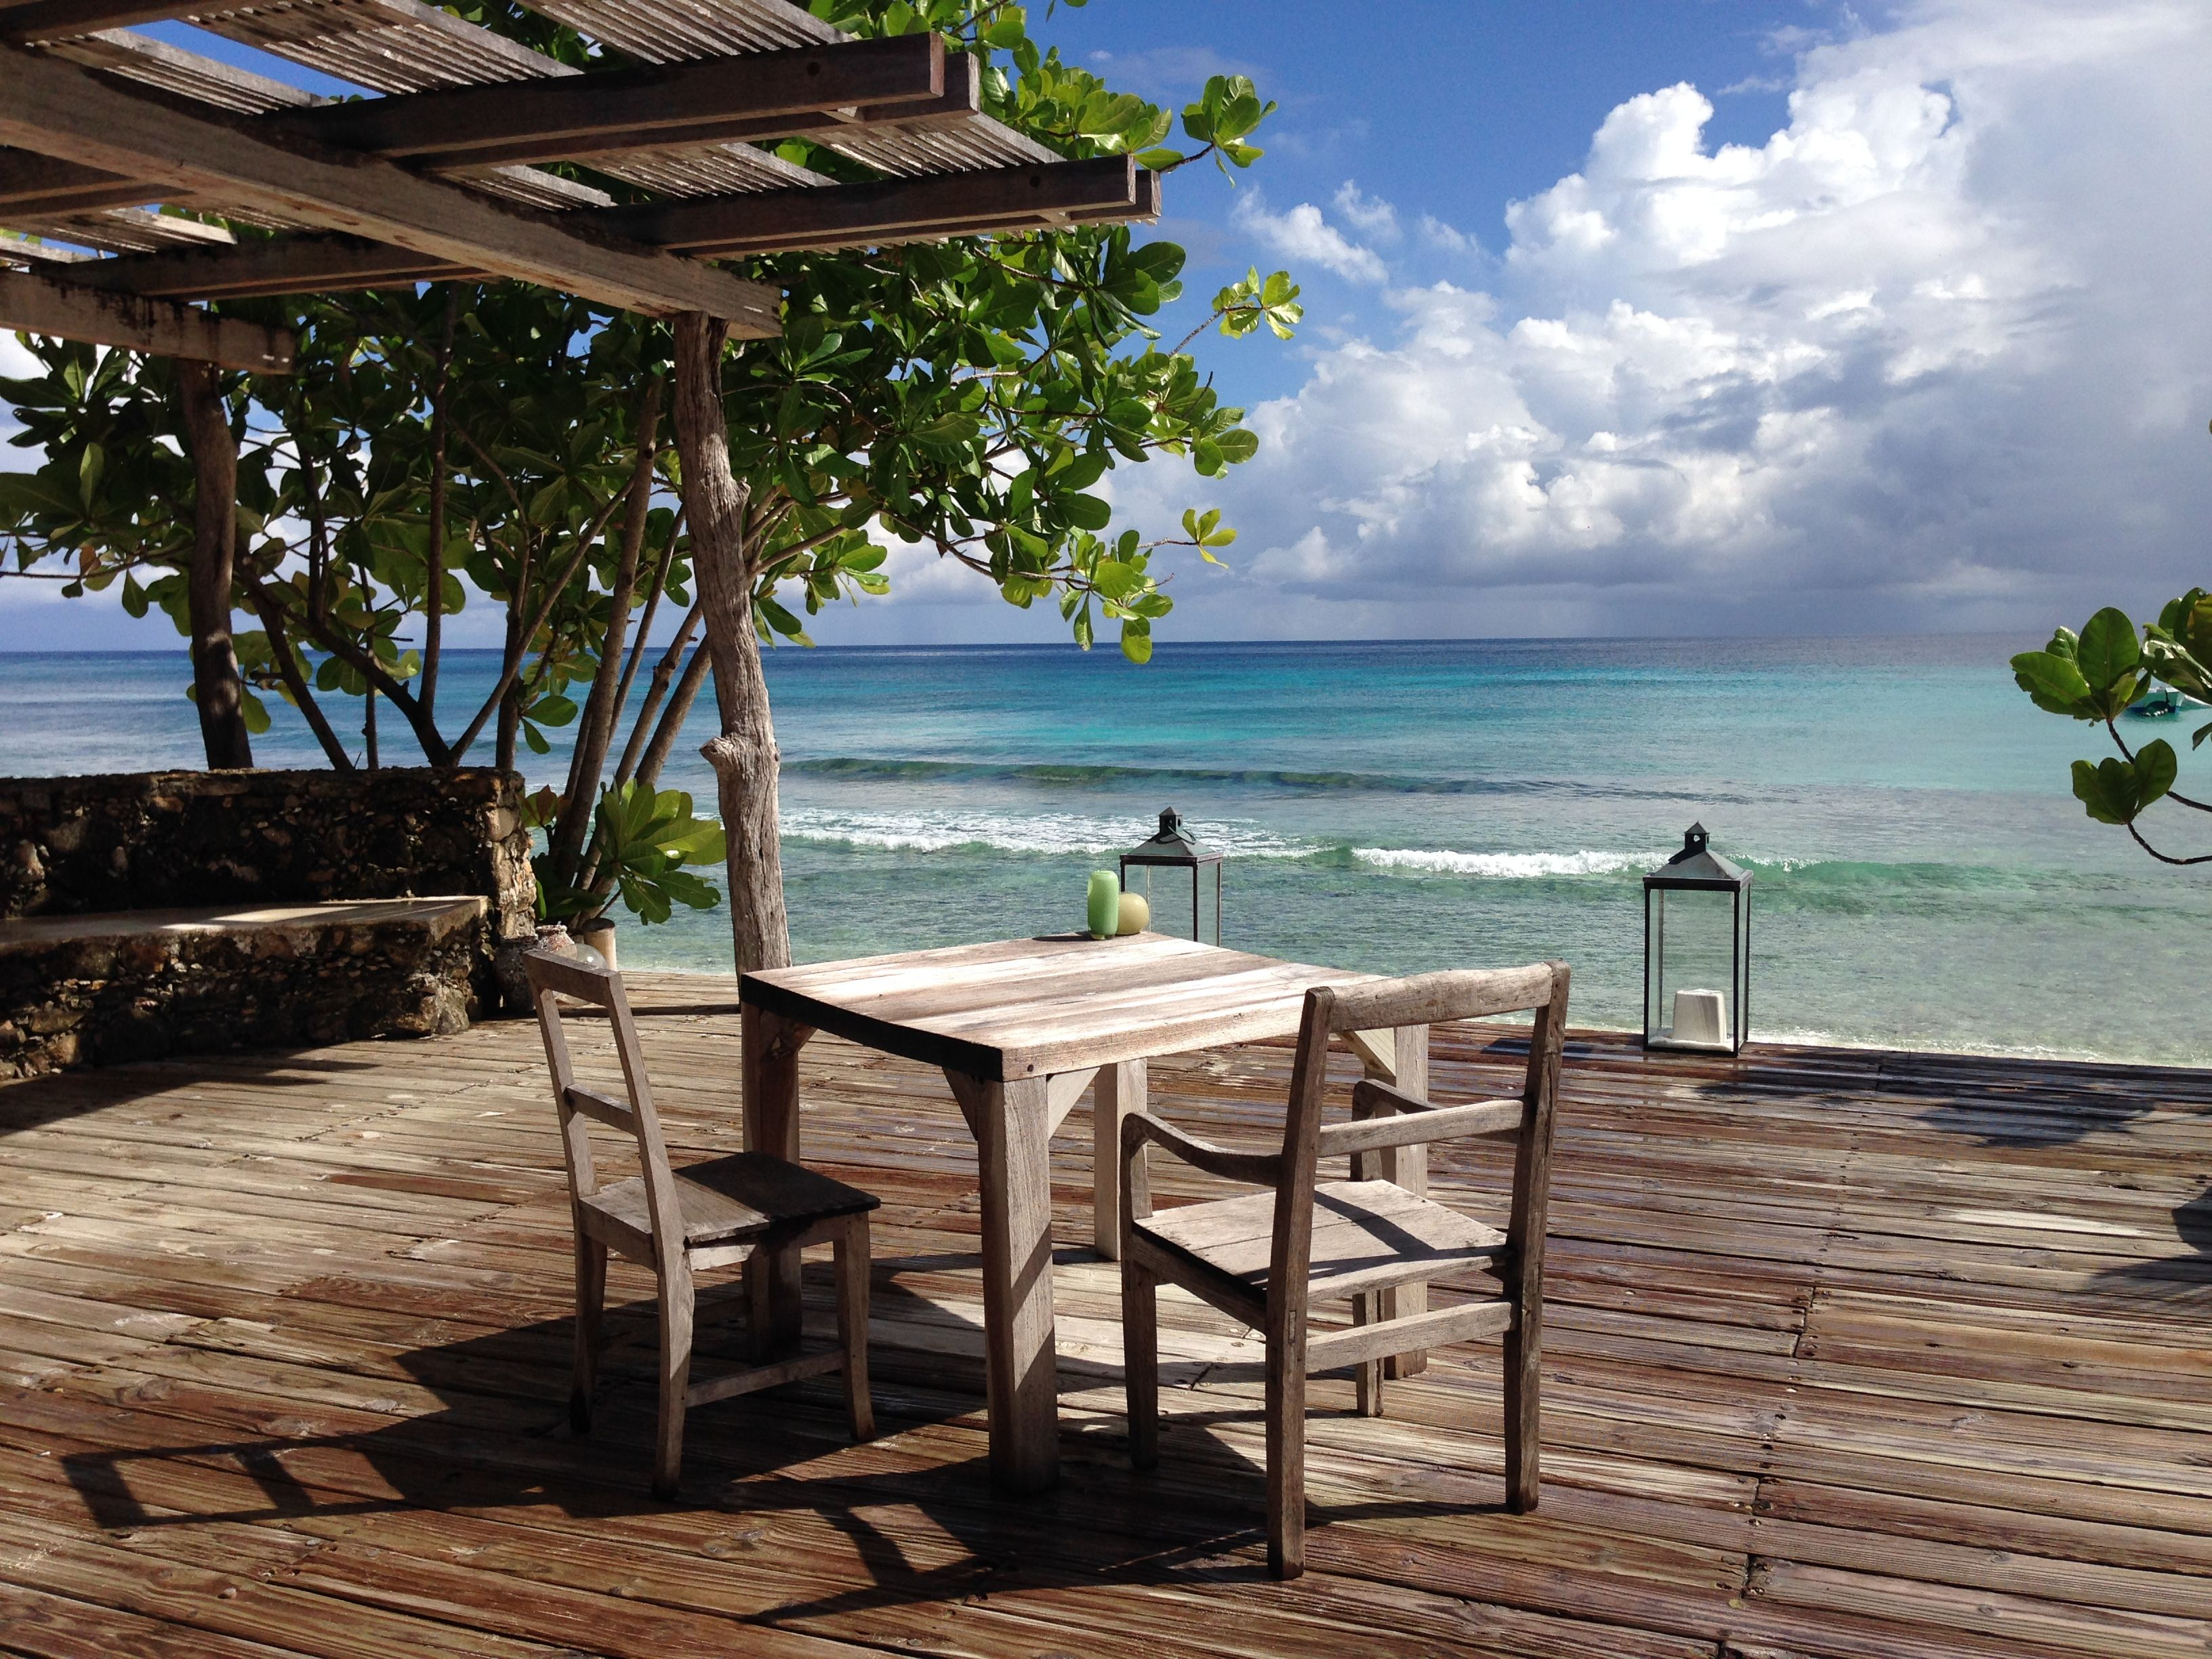 Table for two on the beach at private island northisland head to north island a private island resort in the seychelles the north island resort combines natural beauty with sheer luxury sisterspd